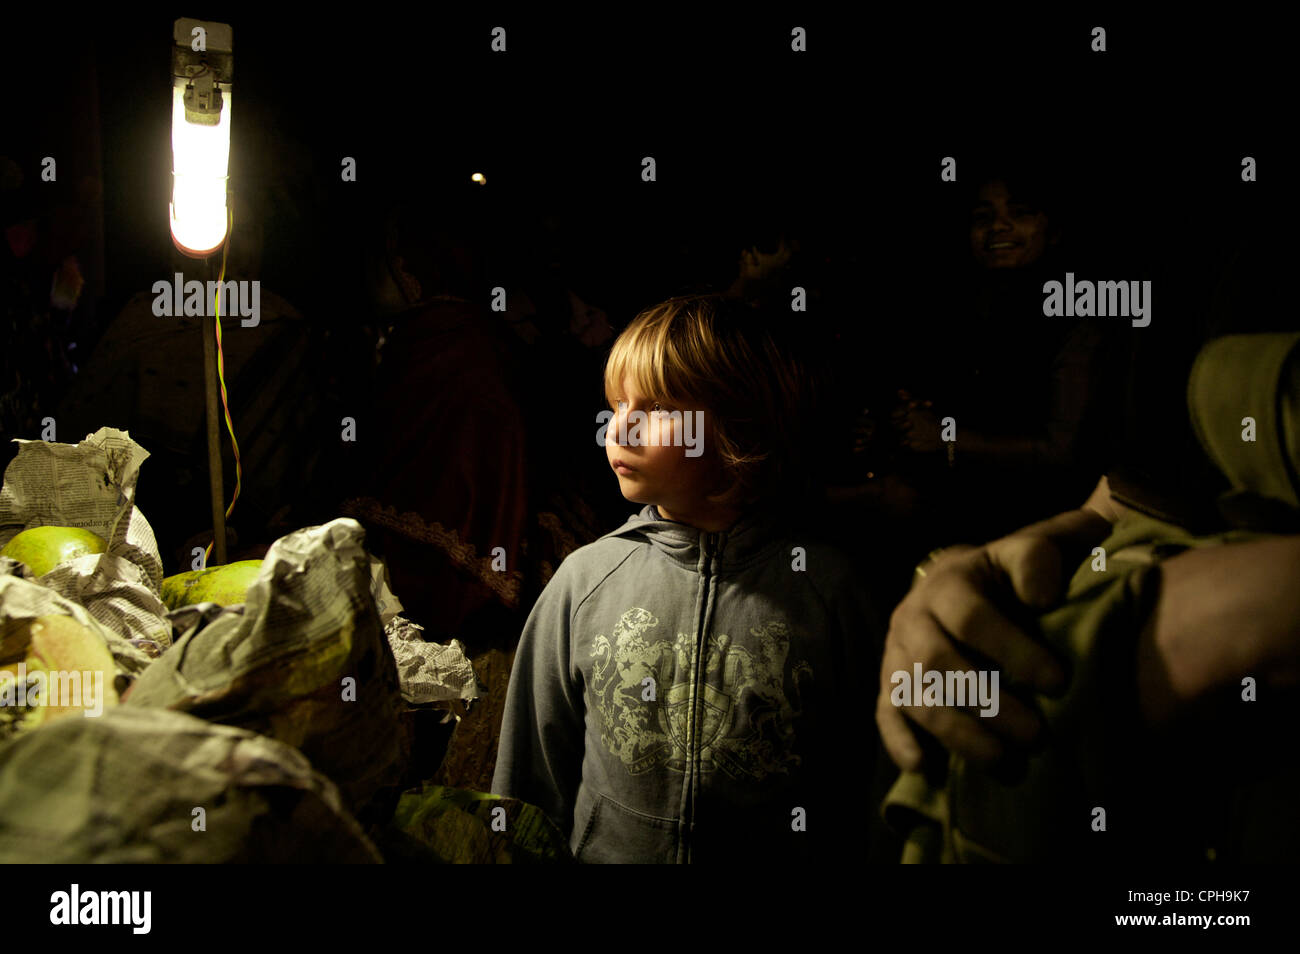 European boy on asian nightmarket - Stock Image